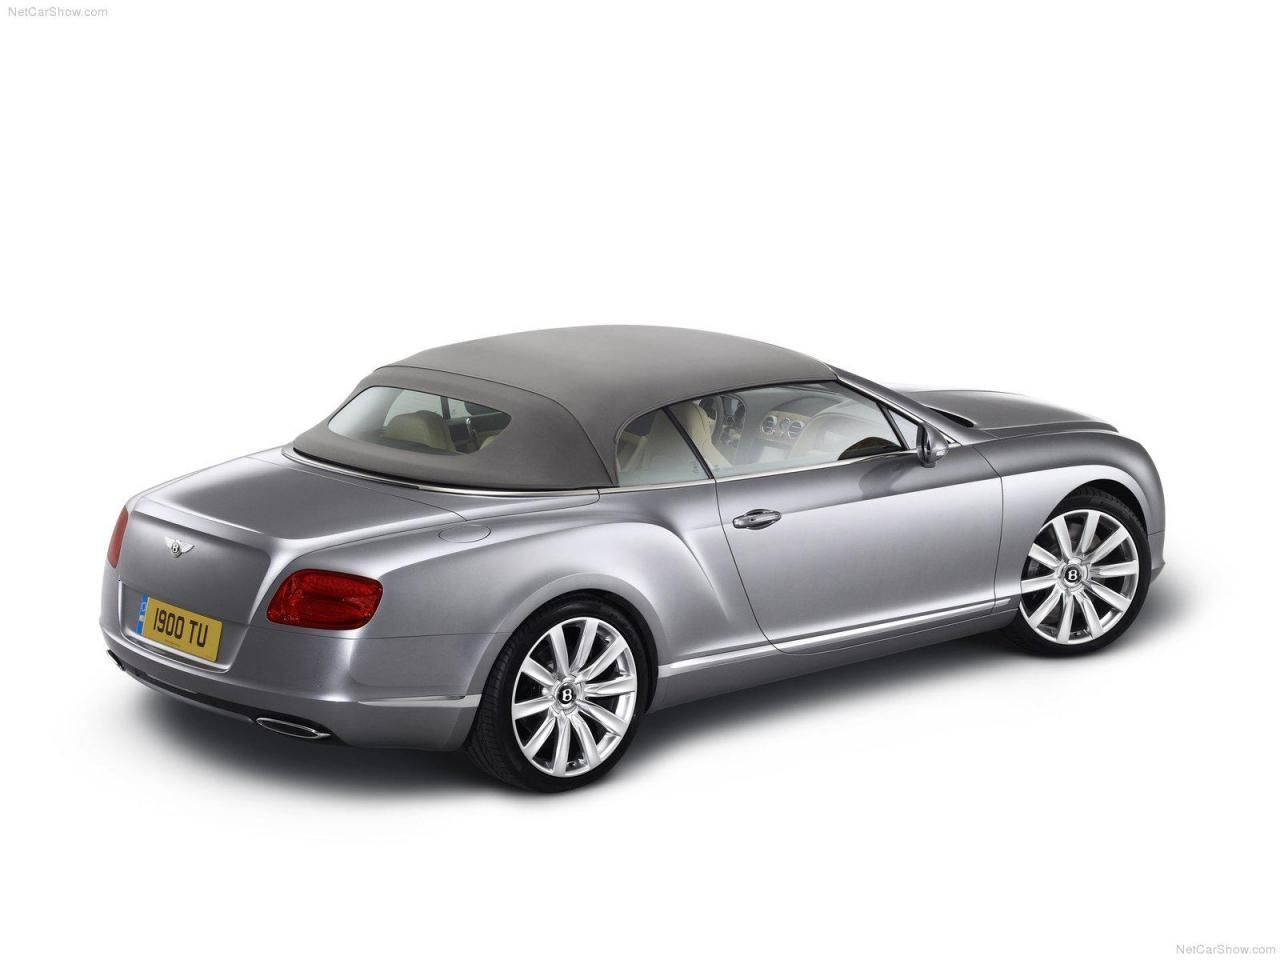 2018 2019 bentley continental gt v8 the new coupe and 2018 2019 bentley continental gt v8 the new coupe and convertible 2018 2019 bentley continental bentley pinterest bentley continental gt bentley vanachro Images